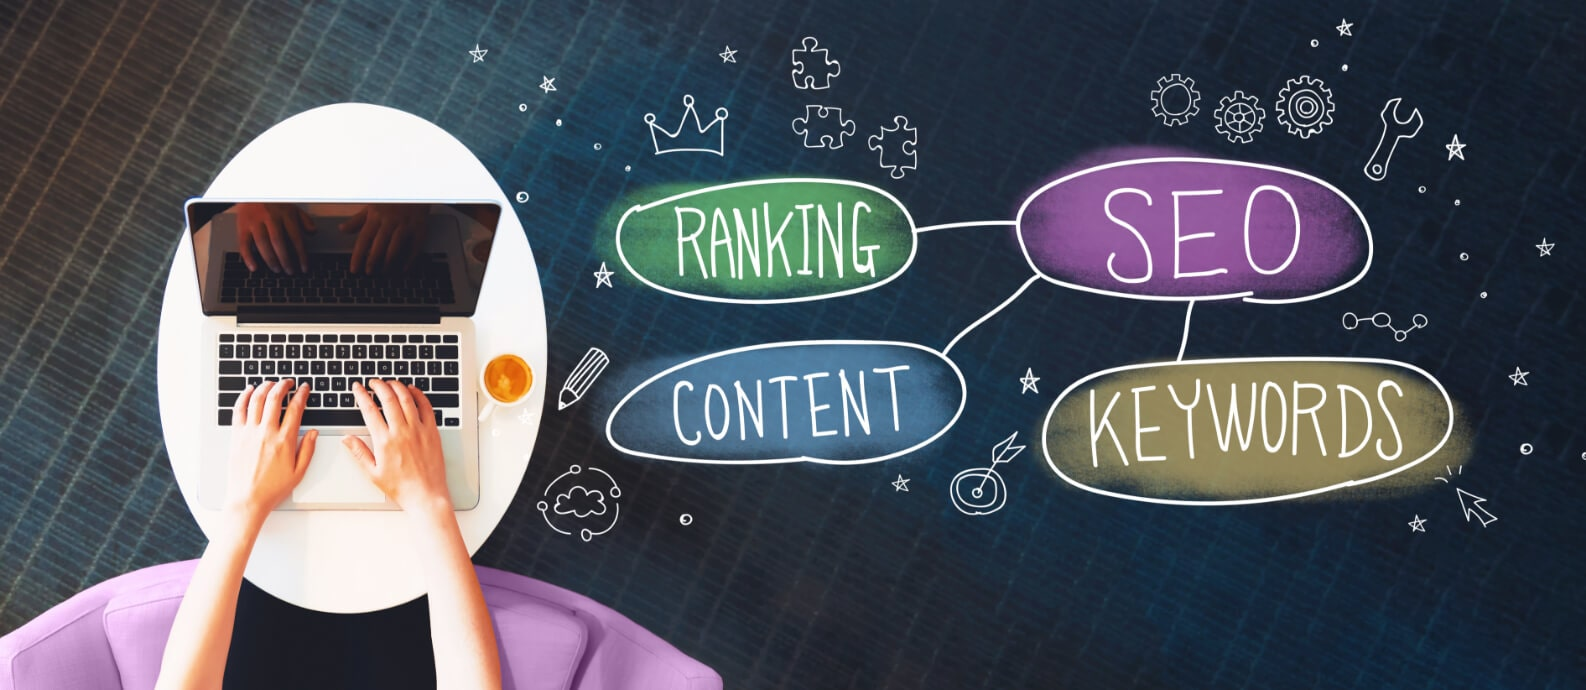 SEO Marketing KPIs